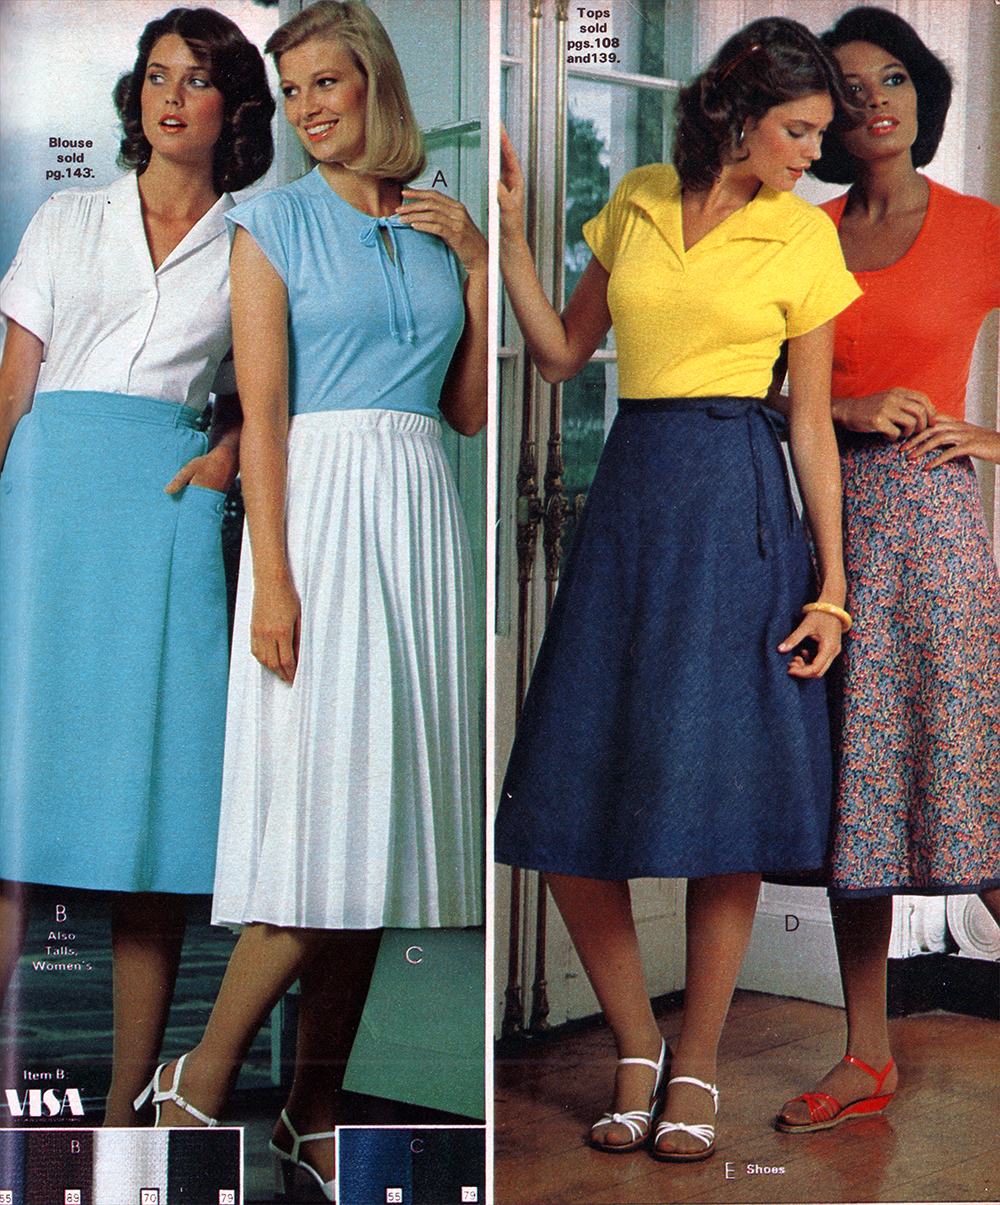 1980s Fashion: What Did Women Wear in the 80's? - The Trend Spotter